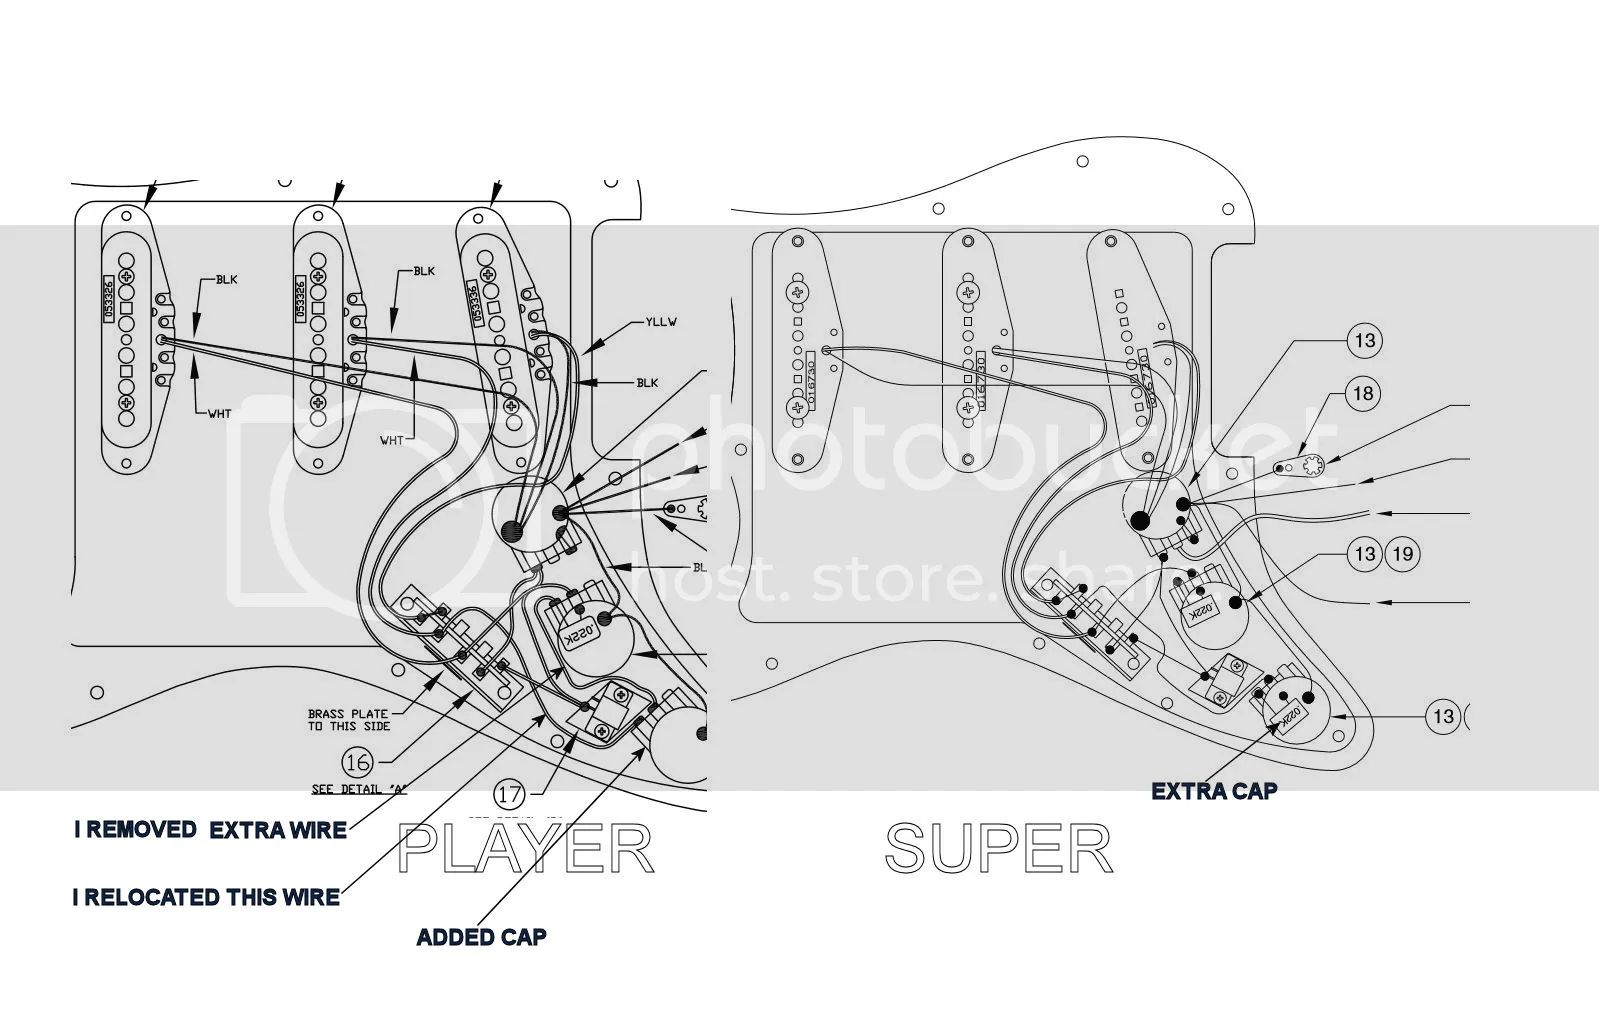 wiring diagram for strat players deluxe